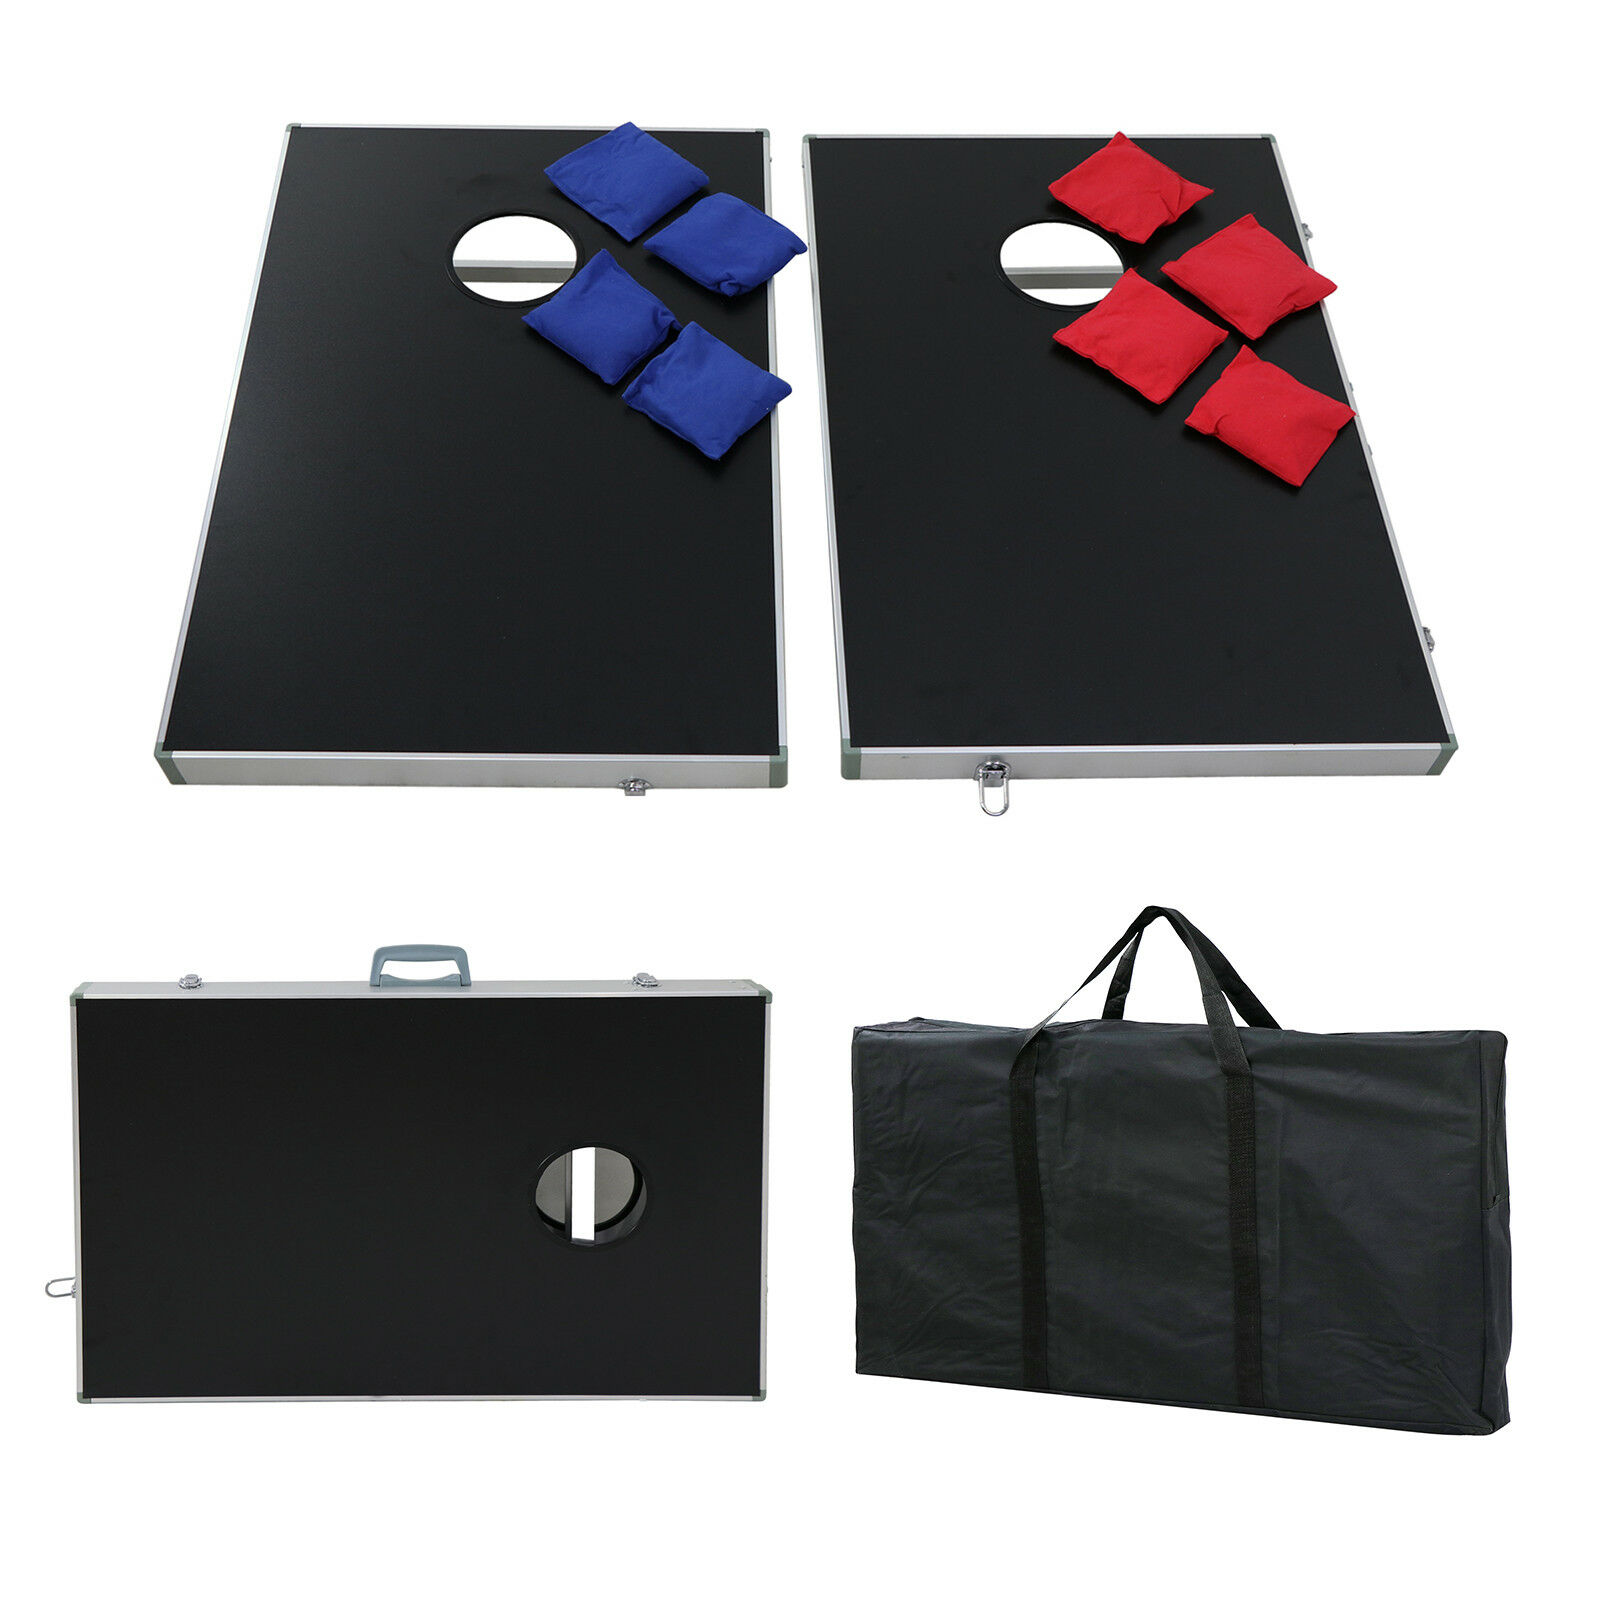 Tournament Bag Cornhole Game  Set Bean Toss Boards Indoor Outdoor bi-colour Bags  free delivery